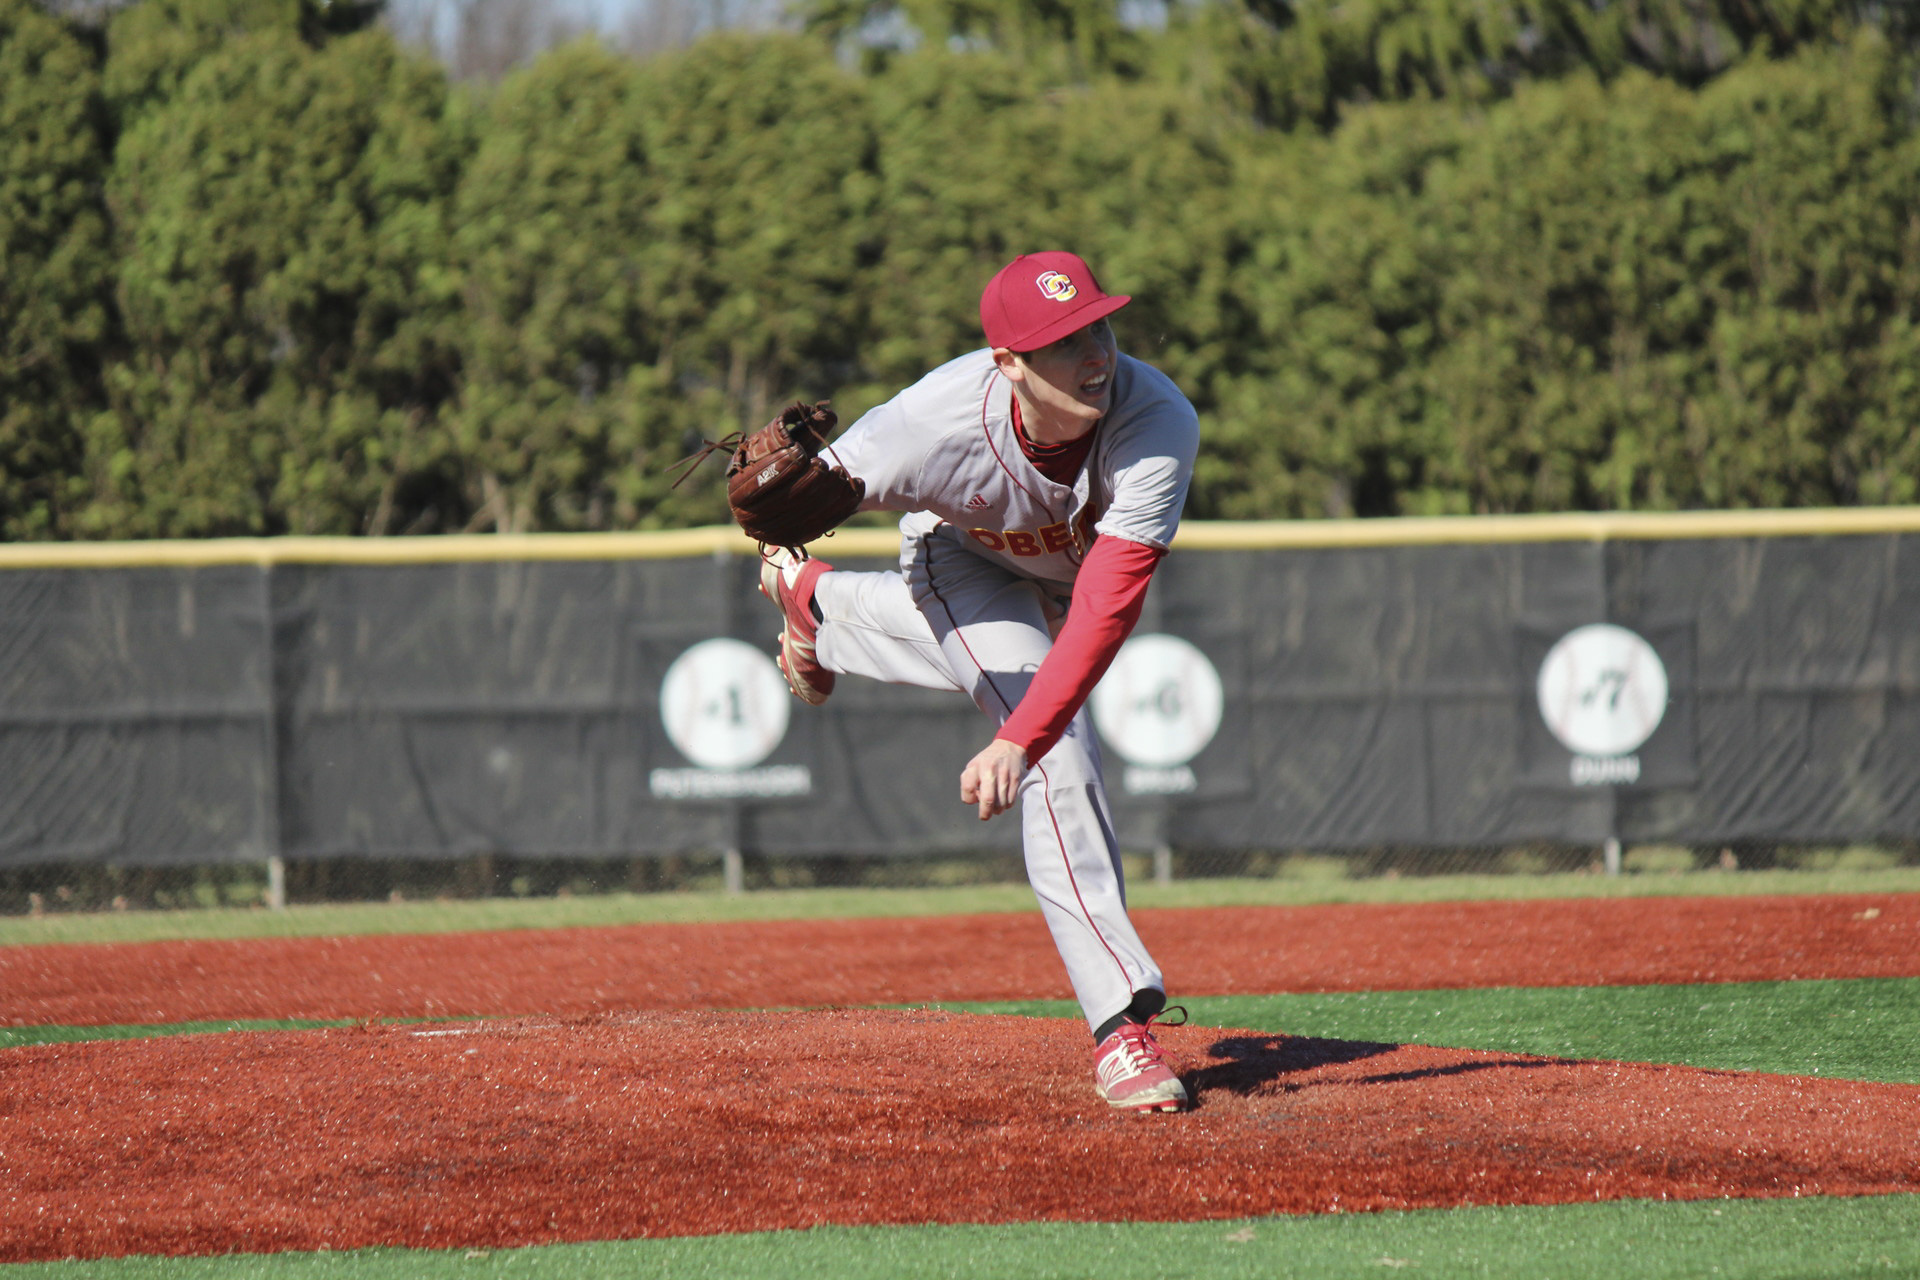 Sophomore Zach Steer pitches for the Yeomen. Steer is currently 3–1 and has struck out 18 batters in 29.2 innings this season. The left-handed pitcher led Oberlin to a 14–4 win over the Hiram College Terriers last Saturday.